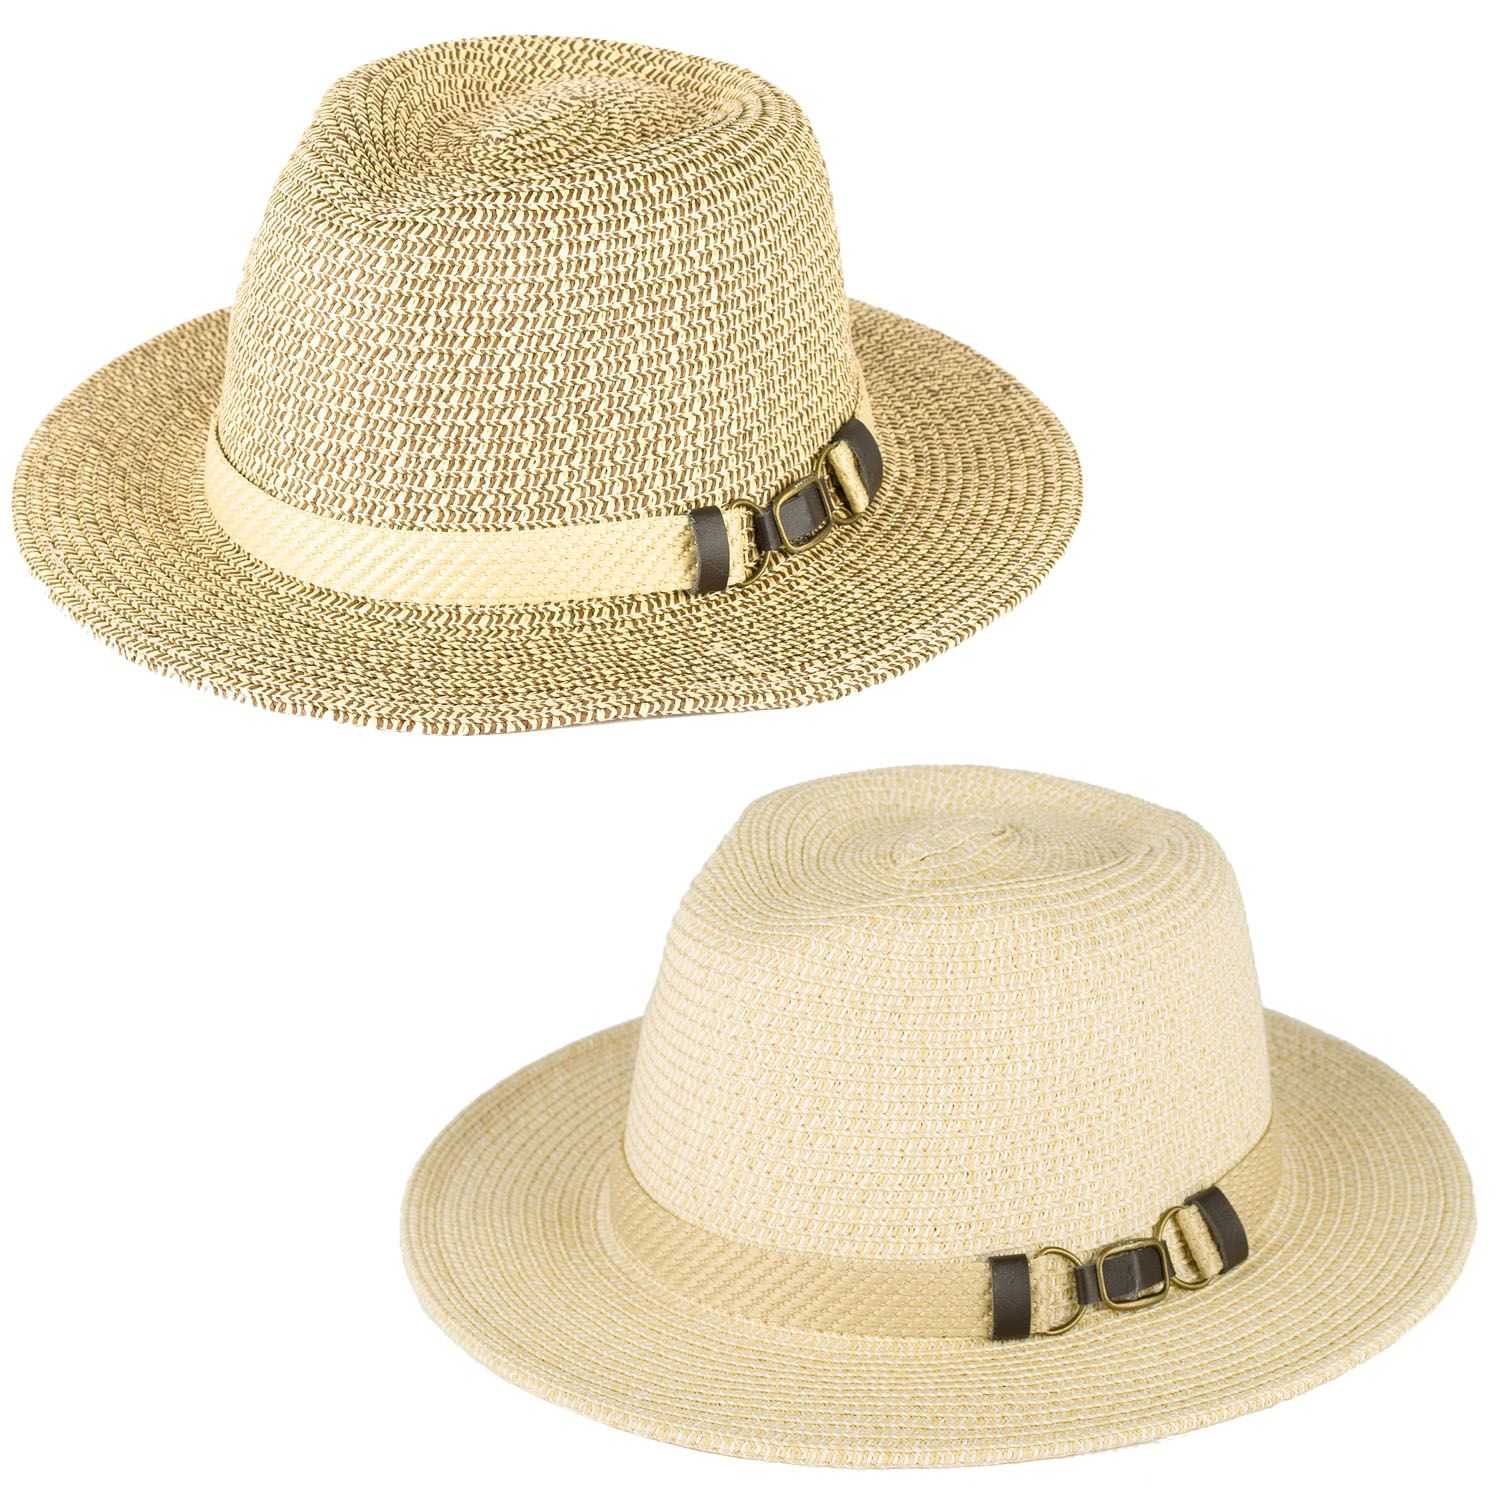 Buckle Hats: Men's Ladies Plain Woven Fedora Hat With Woven Buckle Band